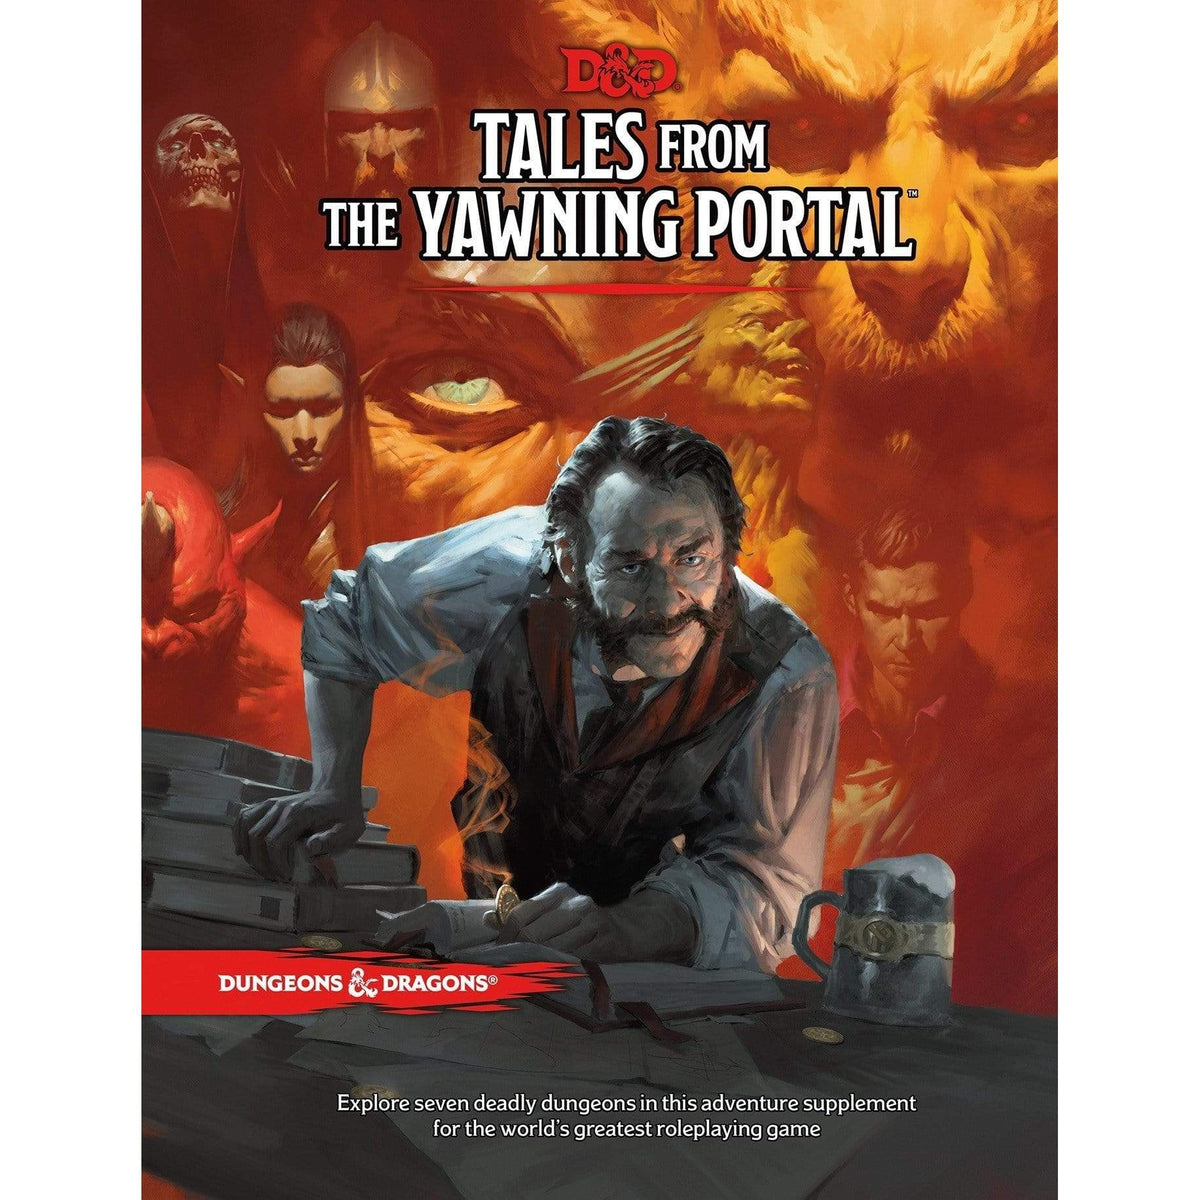 D&D: Tales From The Yawning Portal Wizards of the Coast Board Games